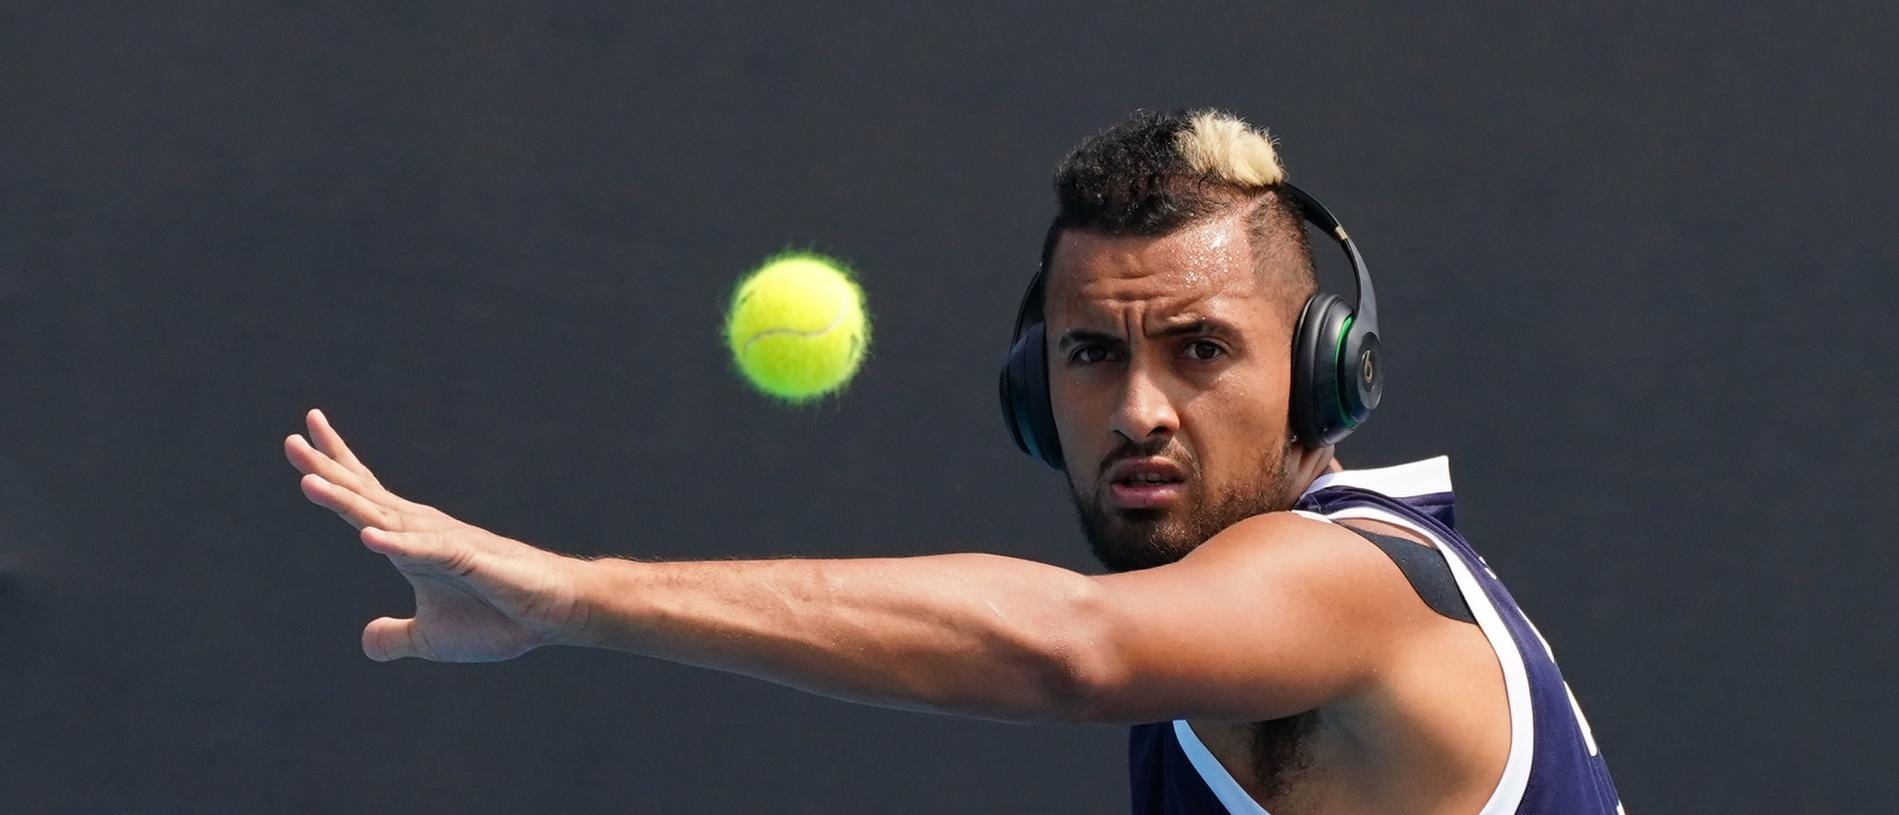 Nick Kyrgios of Australia plays a shot during an Australian Open practice session at Melbourne Park in Melbourne, Saturday, January 18, 2020. (AAP Image/Scott Barbour) NO ARCHIVING